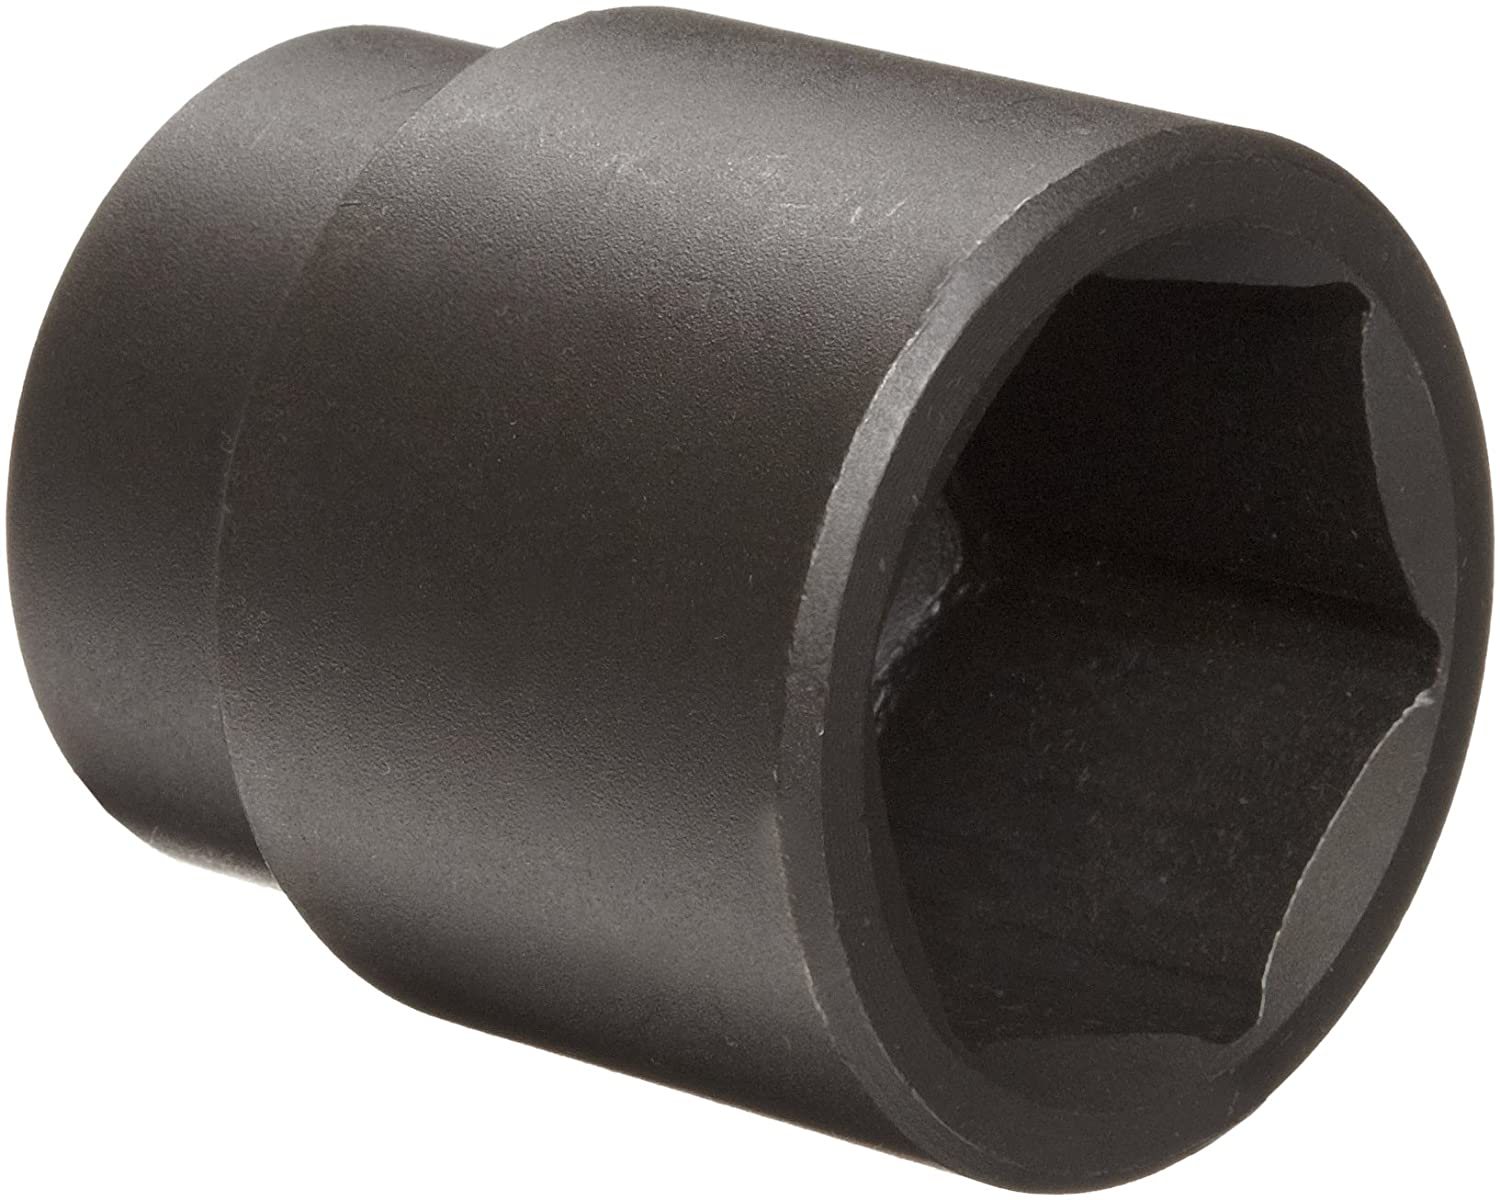 Industrial Black Finish Martin P43 Alloy Steel 3//8 Point Center Punch 6-1//4 Overall Length